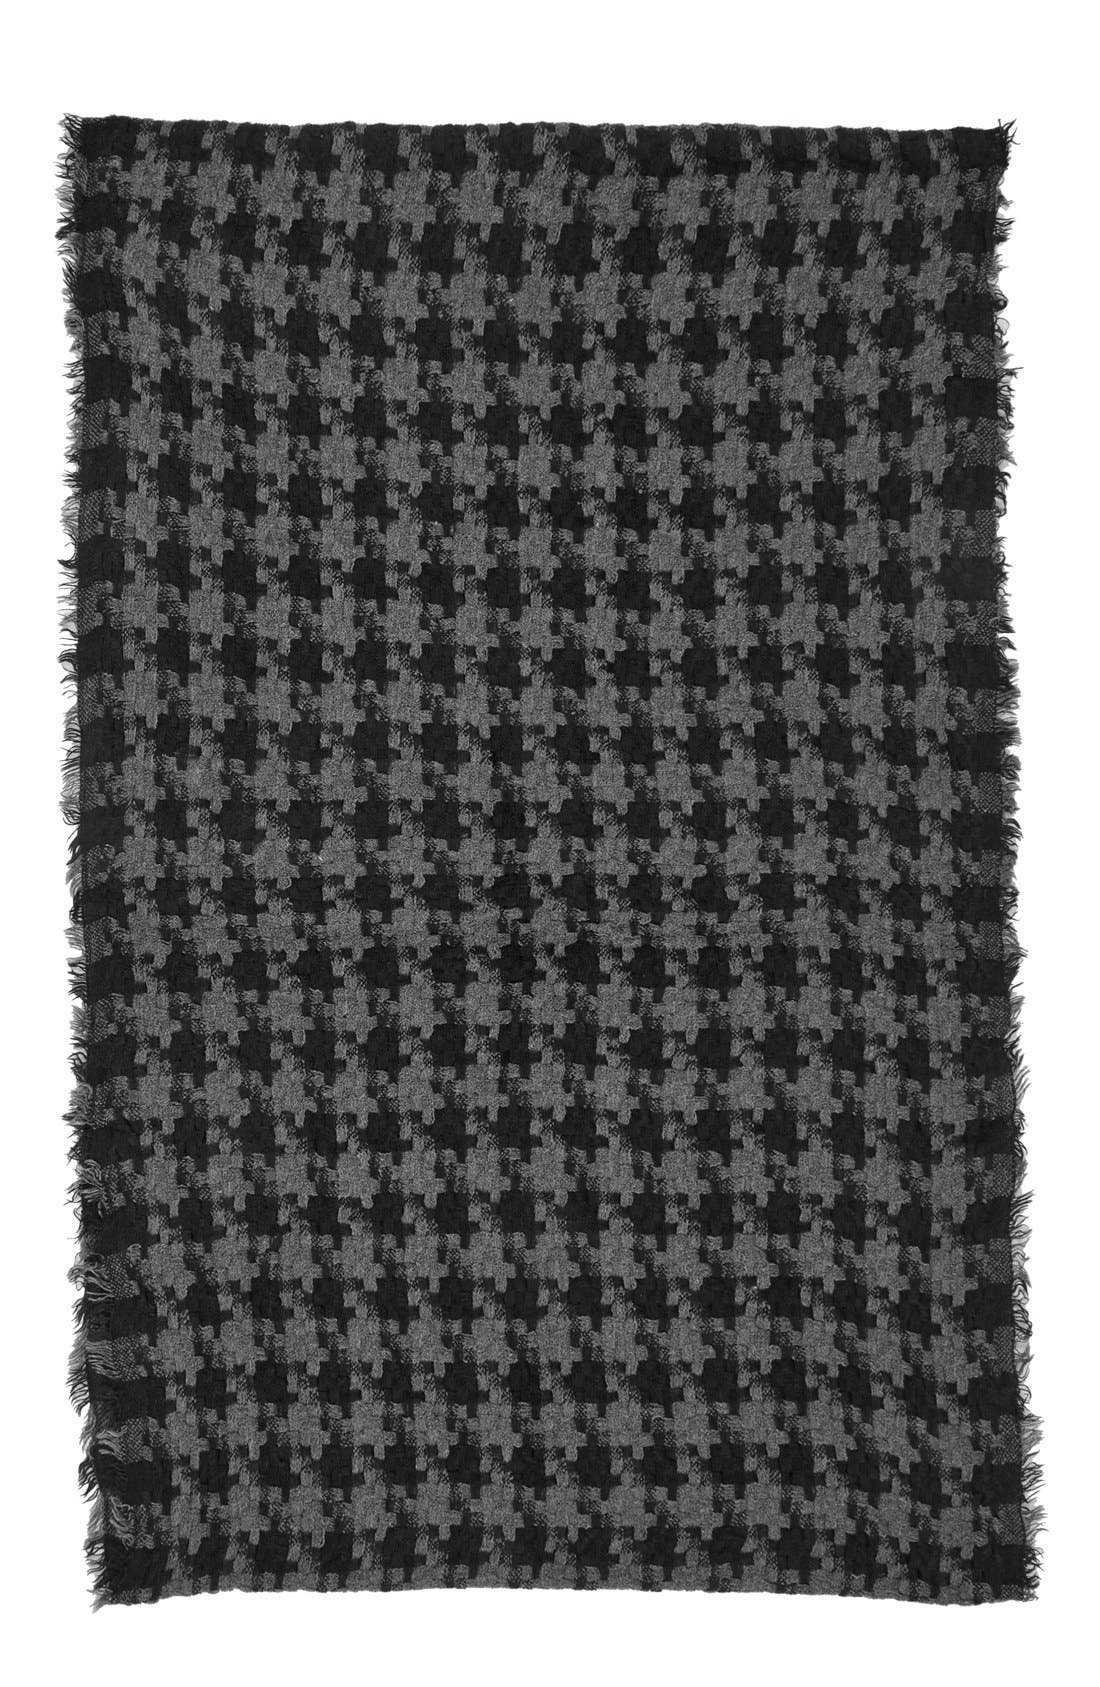 Houndstooth Woven Infinity Scarf,                             Alternate thumbnail 2, color,                             001